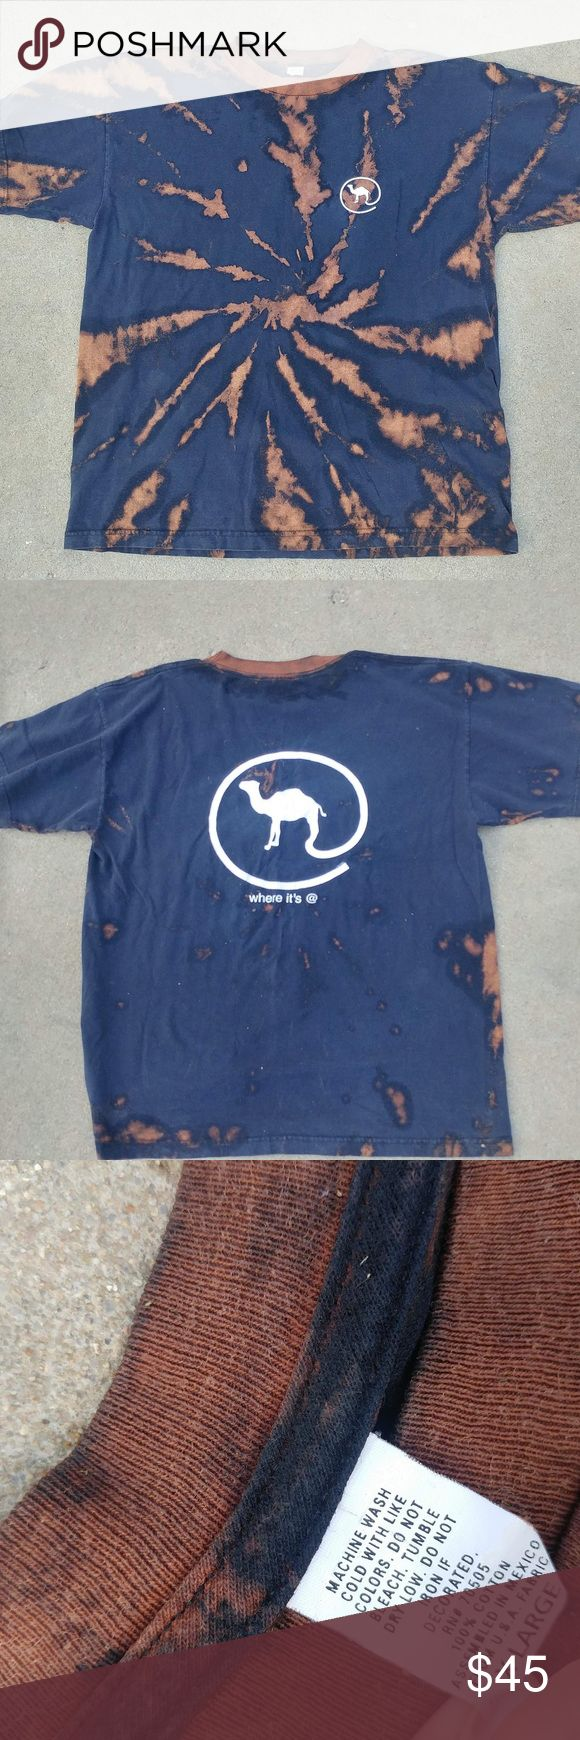 """Vintage Camel tee shirt repurposed reworked 90s Vintage Camel tee shirt """" where it's @"""" 1997. Throwback. Repurposed reworked. Bleach dyed by @lovemaddiejane.  One of a kind Vintage Tops Tees - Short Sleeve"""